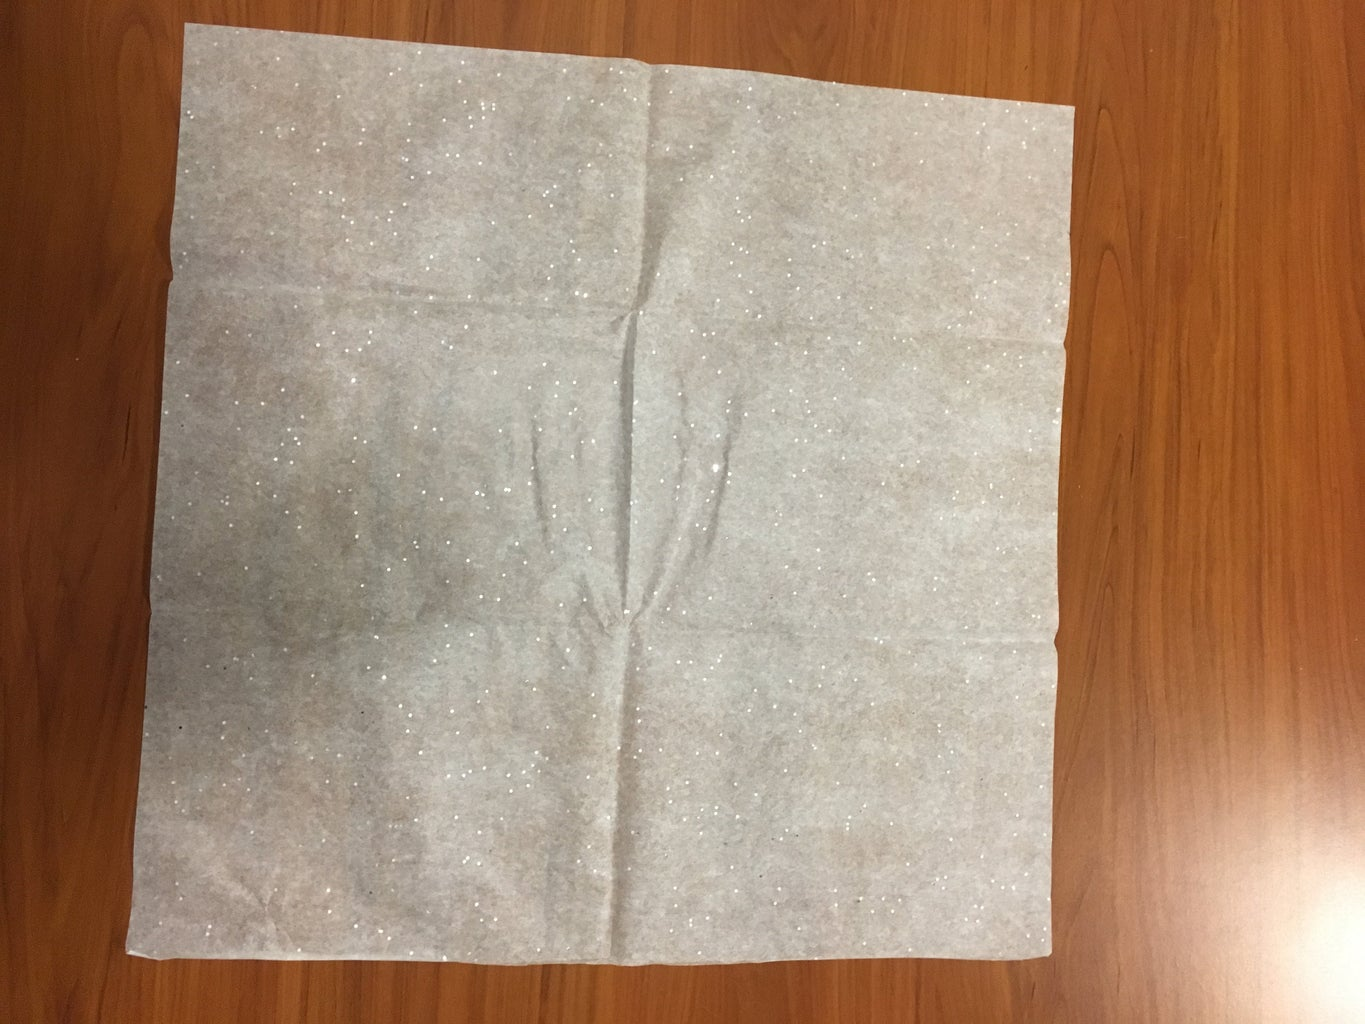 Lay Out the Tissue Paper